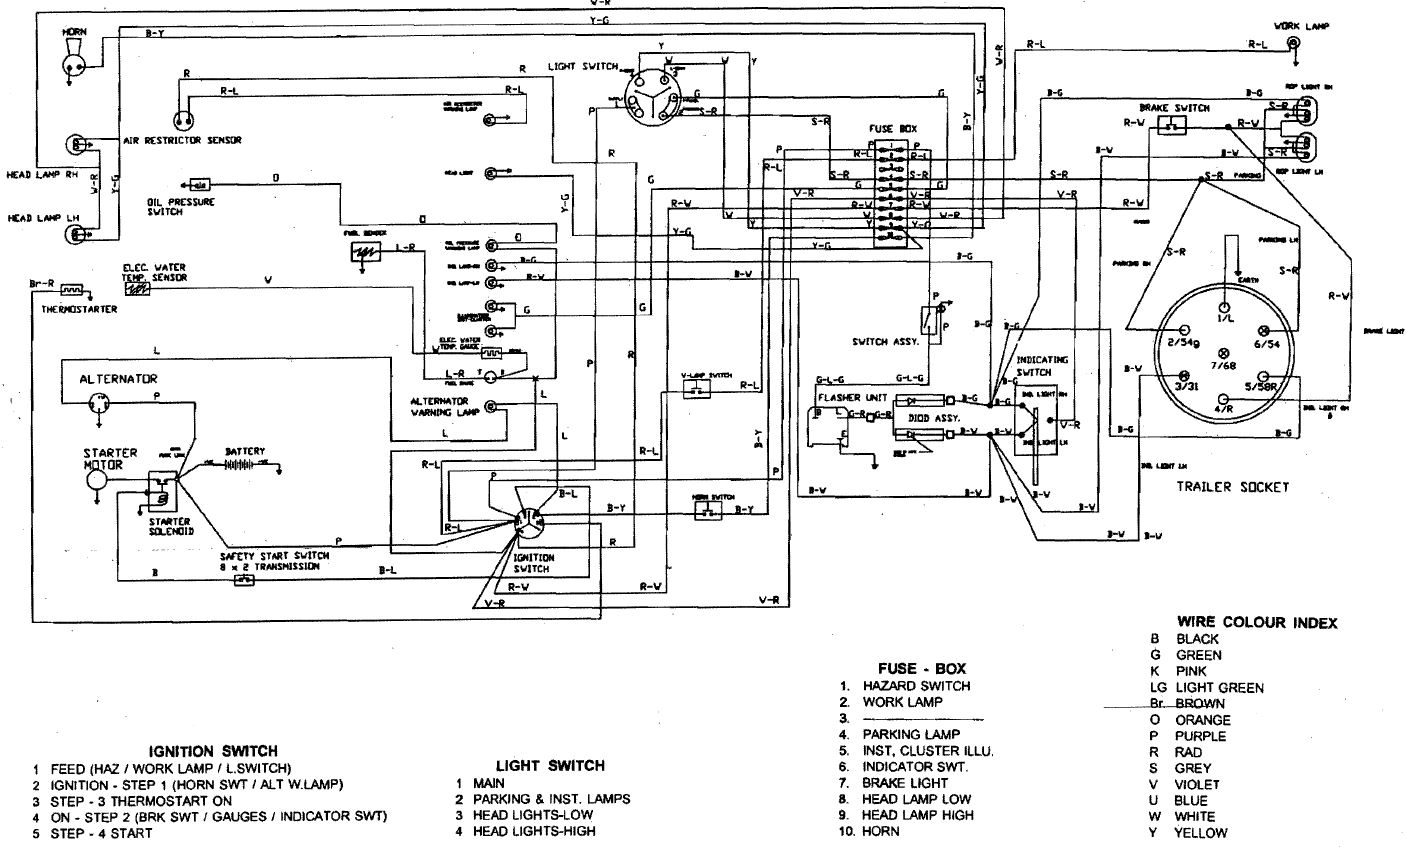 20158463319_b82d524c3d_o ignition switch wiring diagram kubota ignition switch wiring diagram at soozxer.org